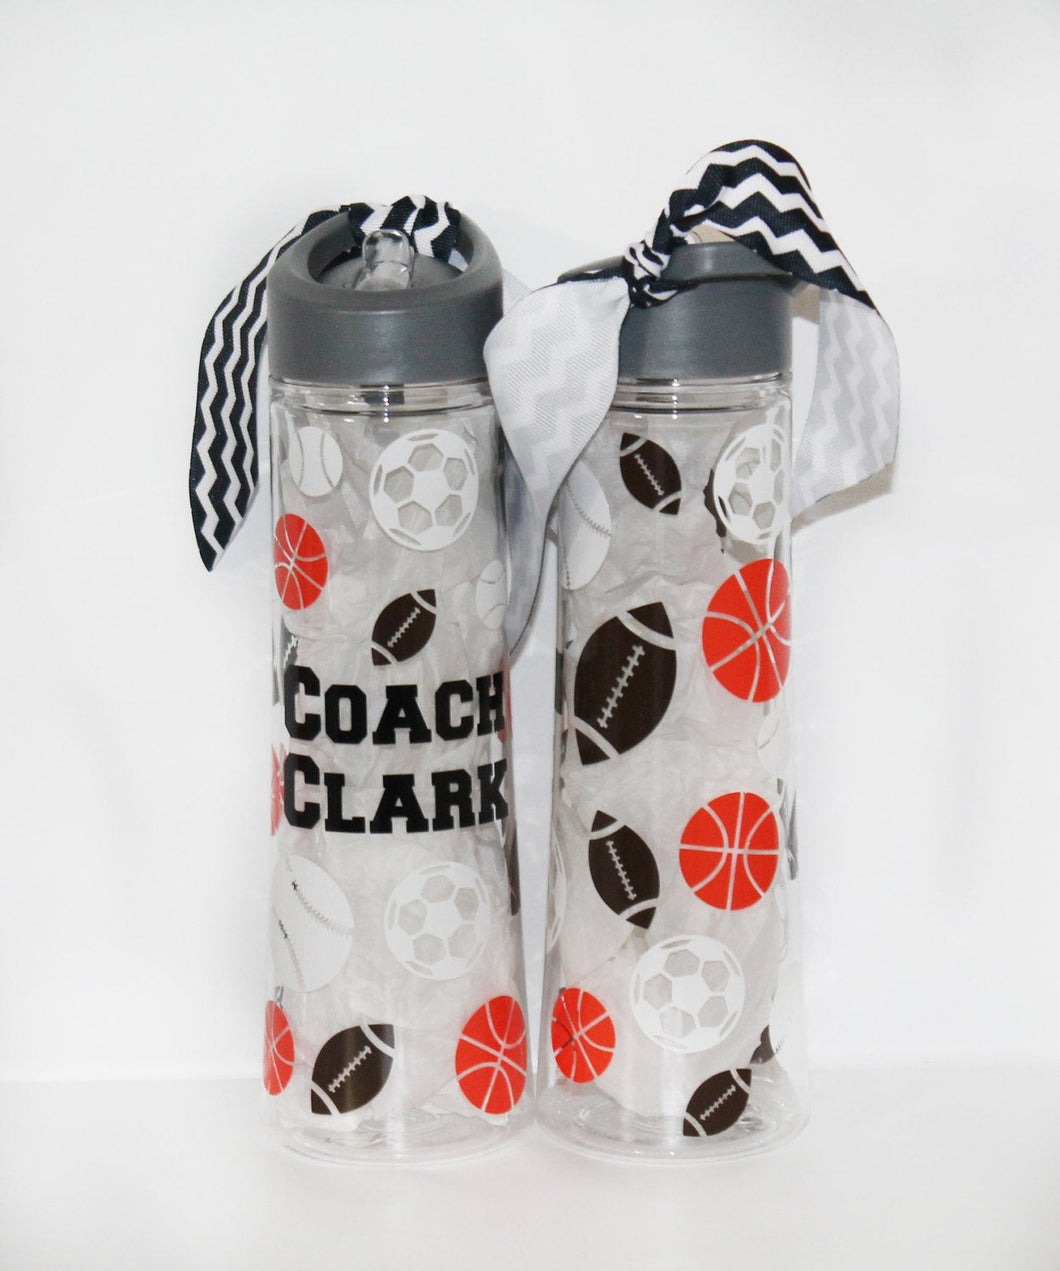 Personalized Sports Coach 22oz Plastic Waterbottle - Thank You Gift - Appreciation - End of Year - Football - Basketball - Travel - Drink